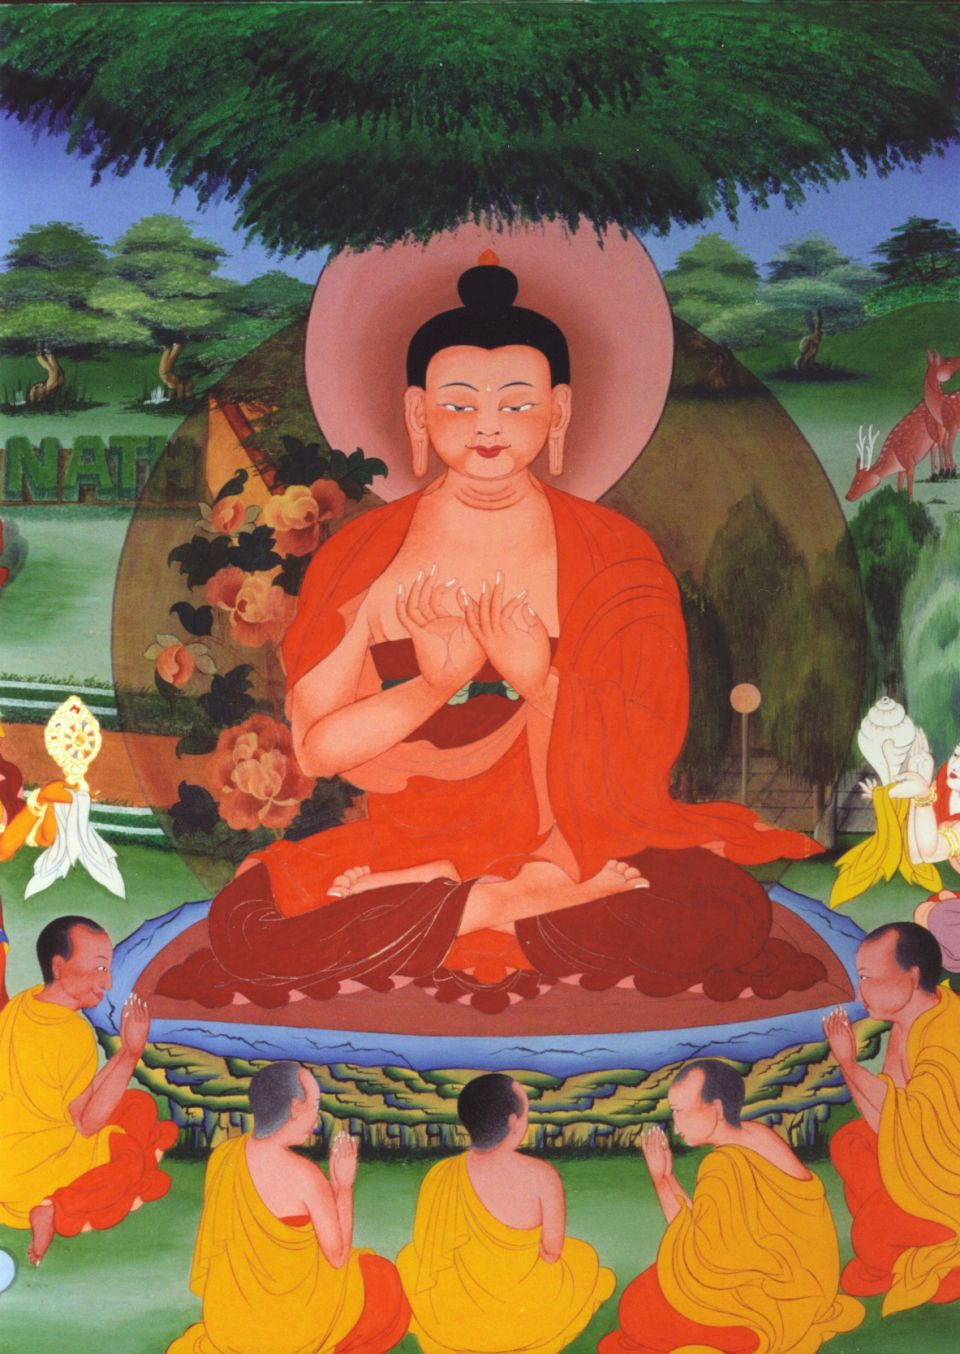 turning-wheel-of-dharma-land-of-medicine-buddha